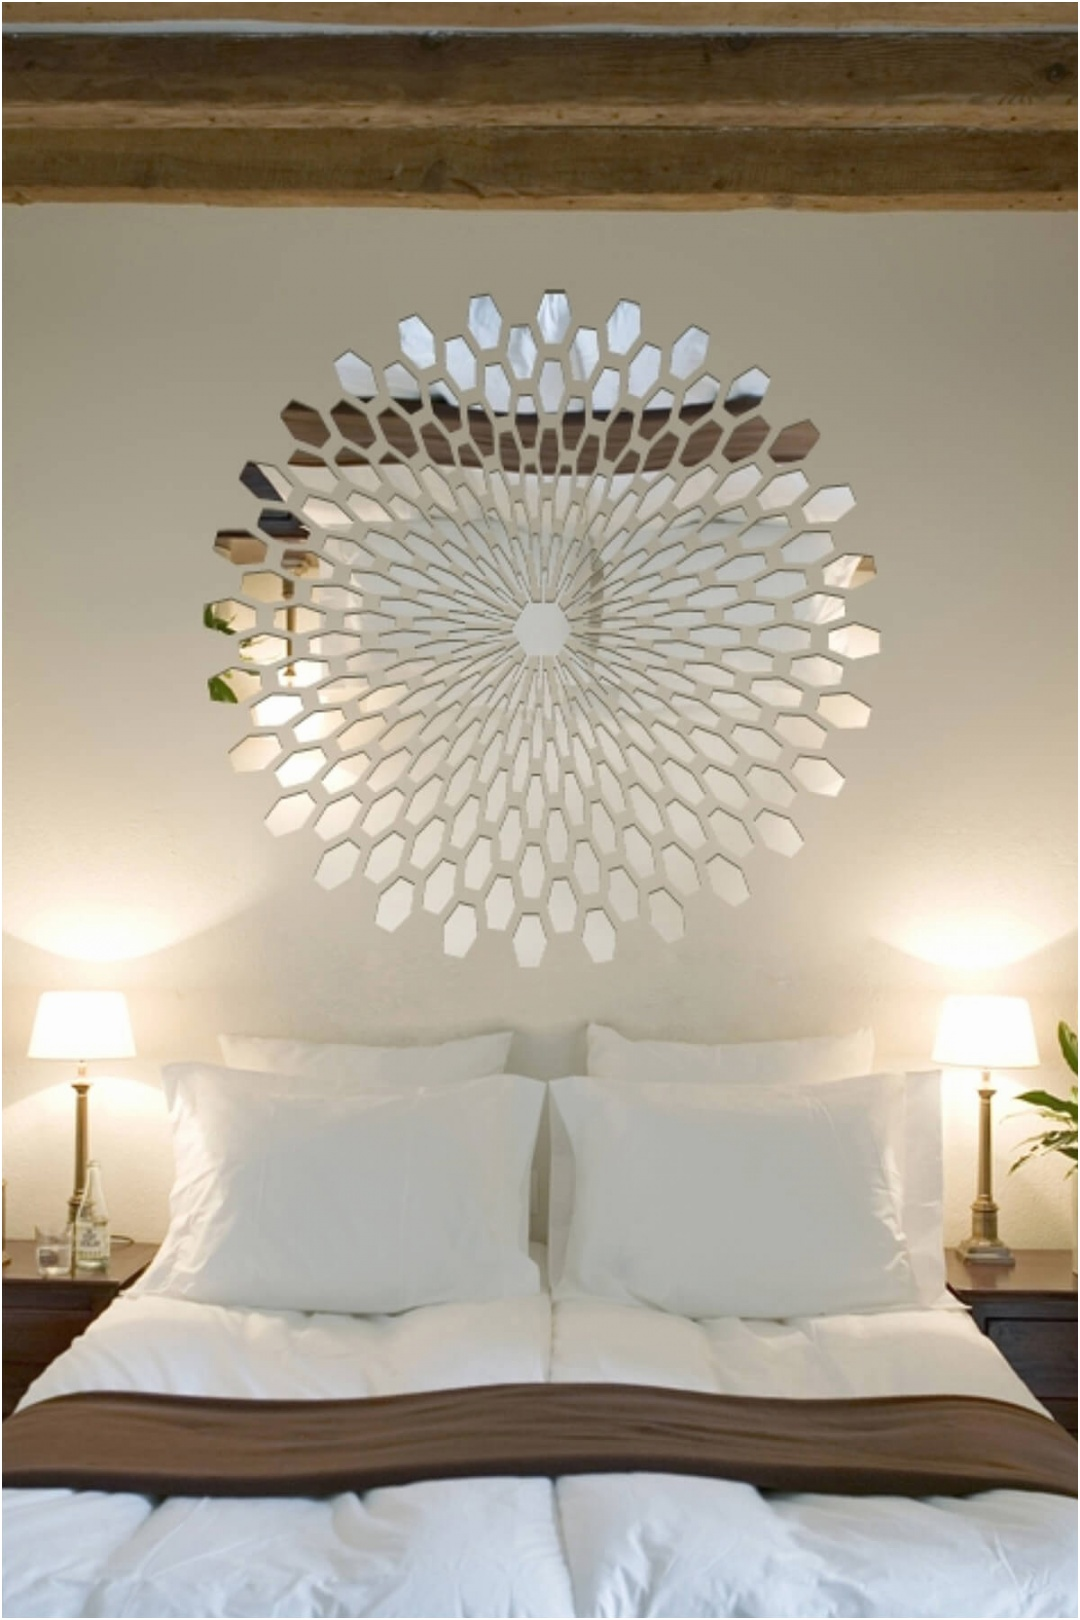 02 mirror decoration ideas homebnc